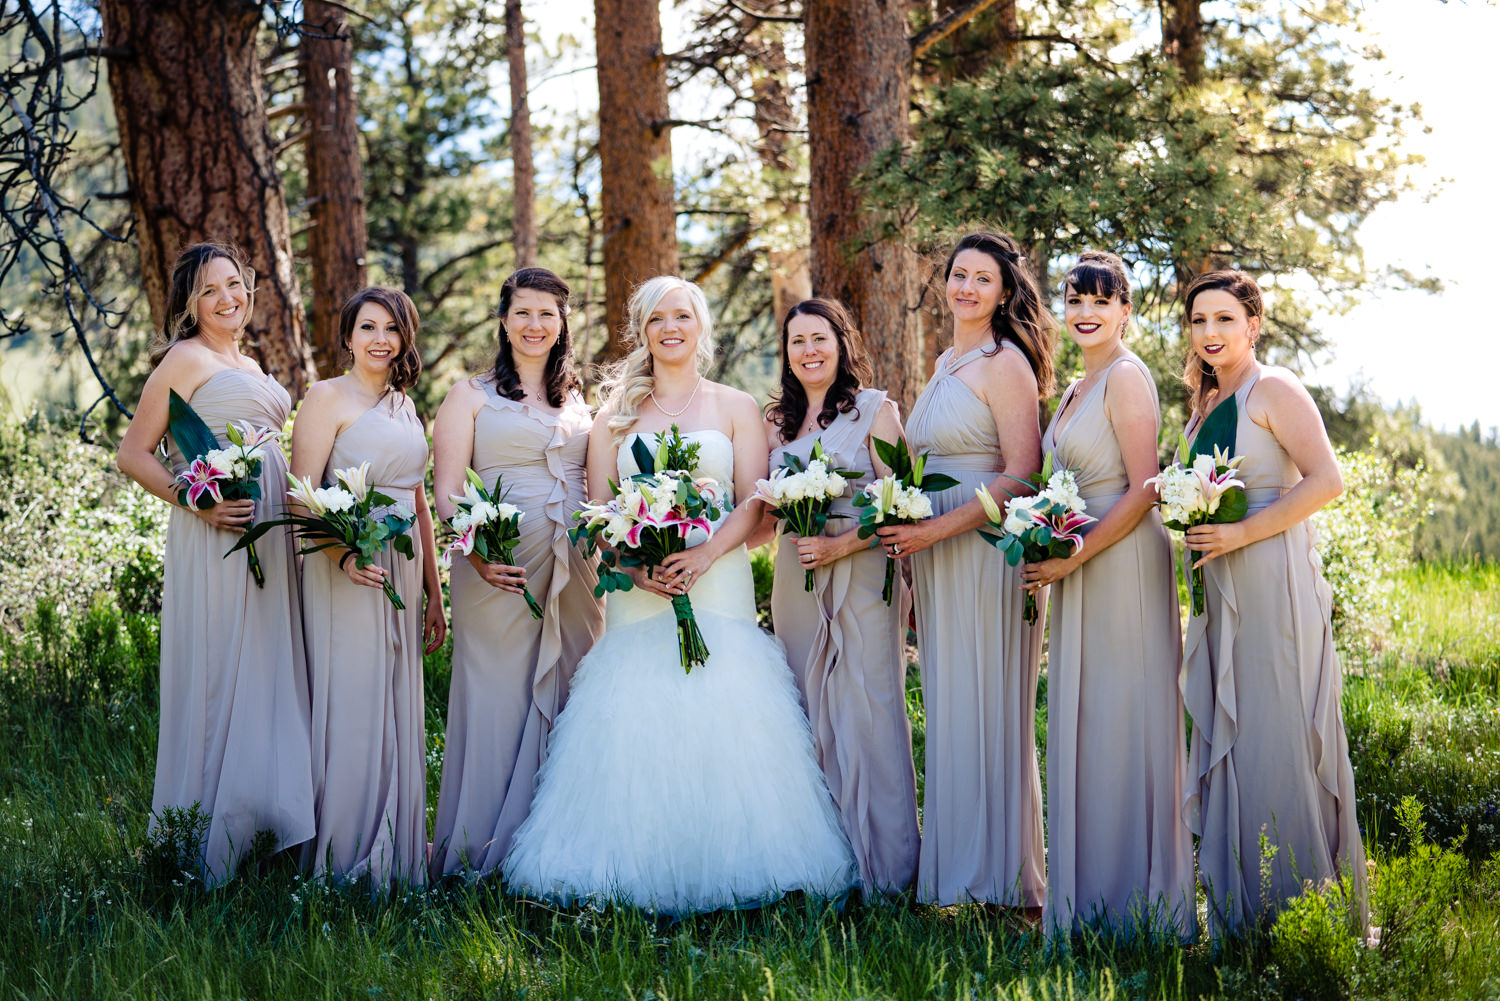 YMCA of the Rockies Wedding by Estes Park Wedding Photographer JMGant Photography.